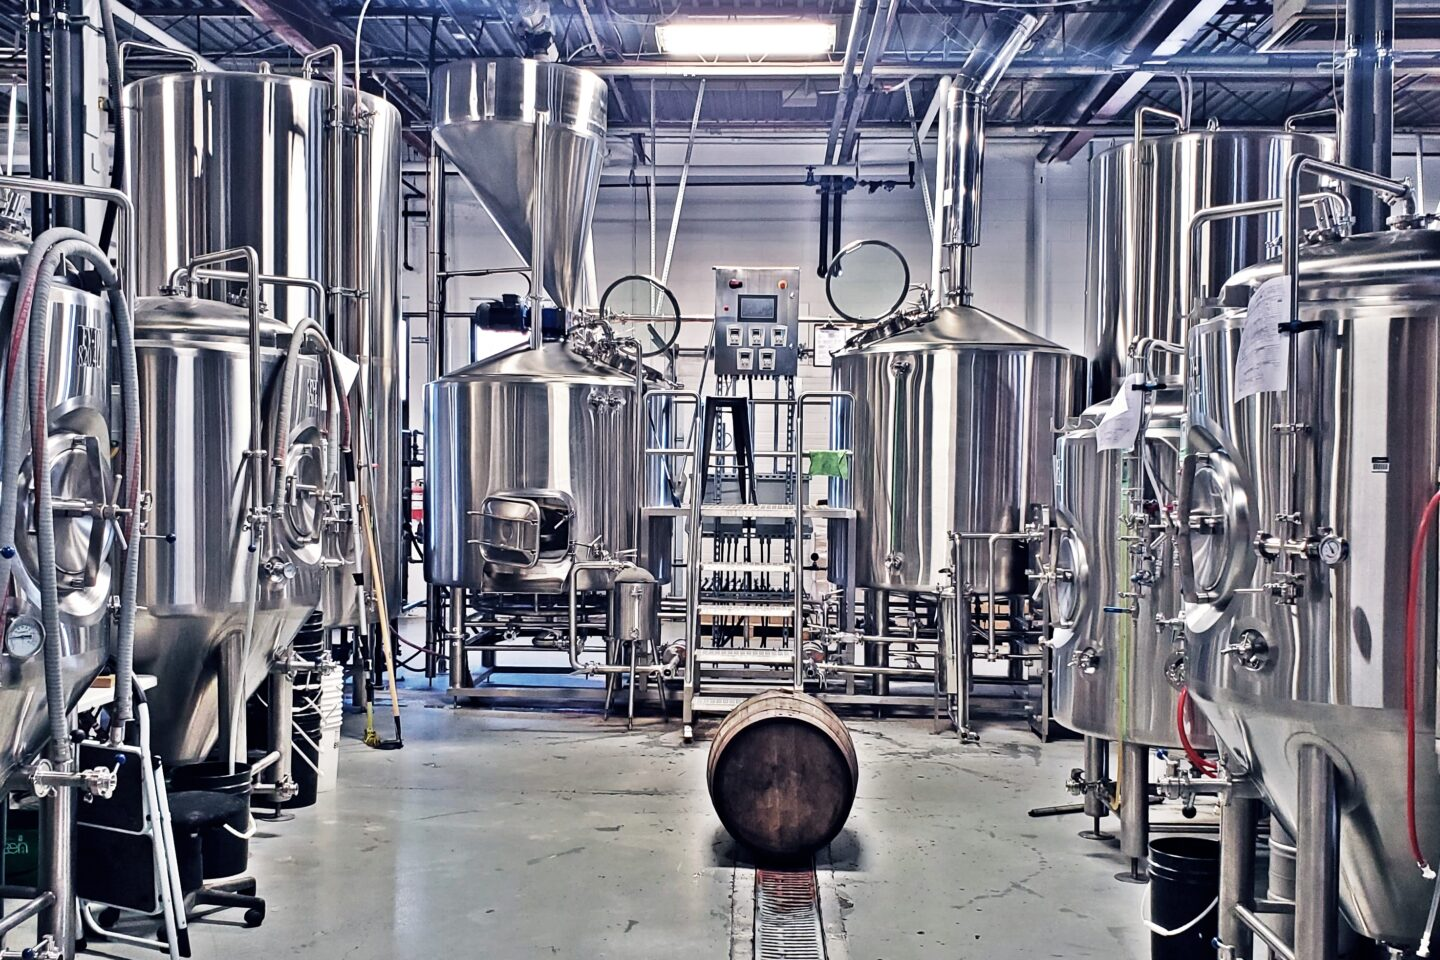 Brewmaster's Four Flight Sampling and Founding Tour